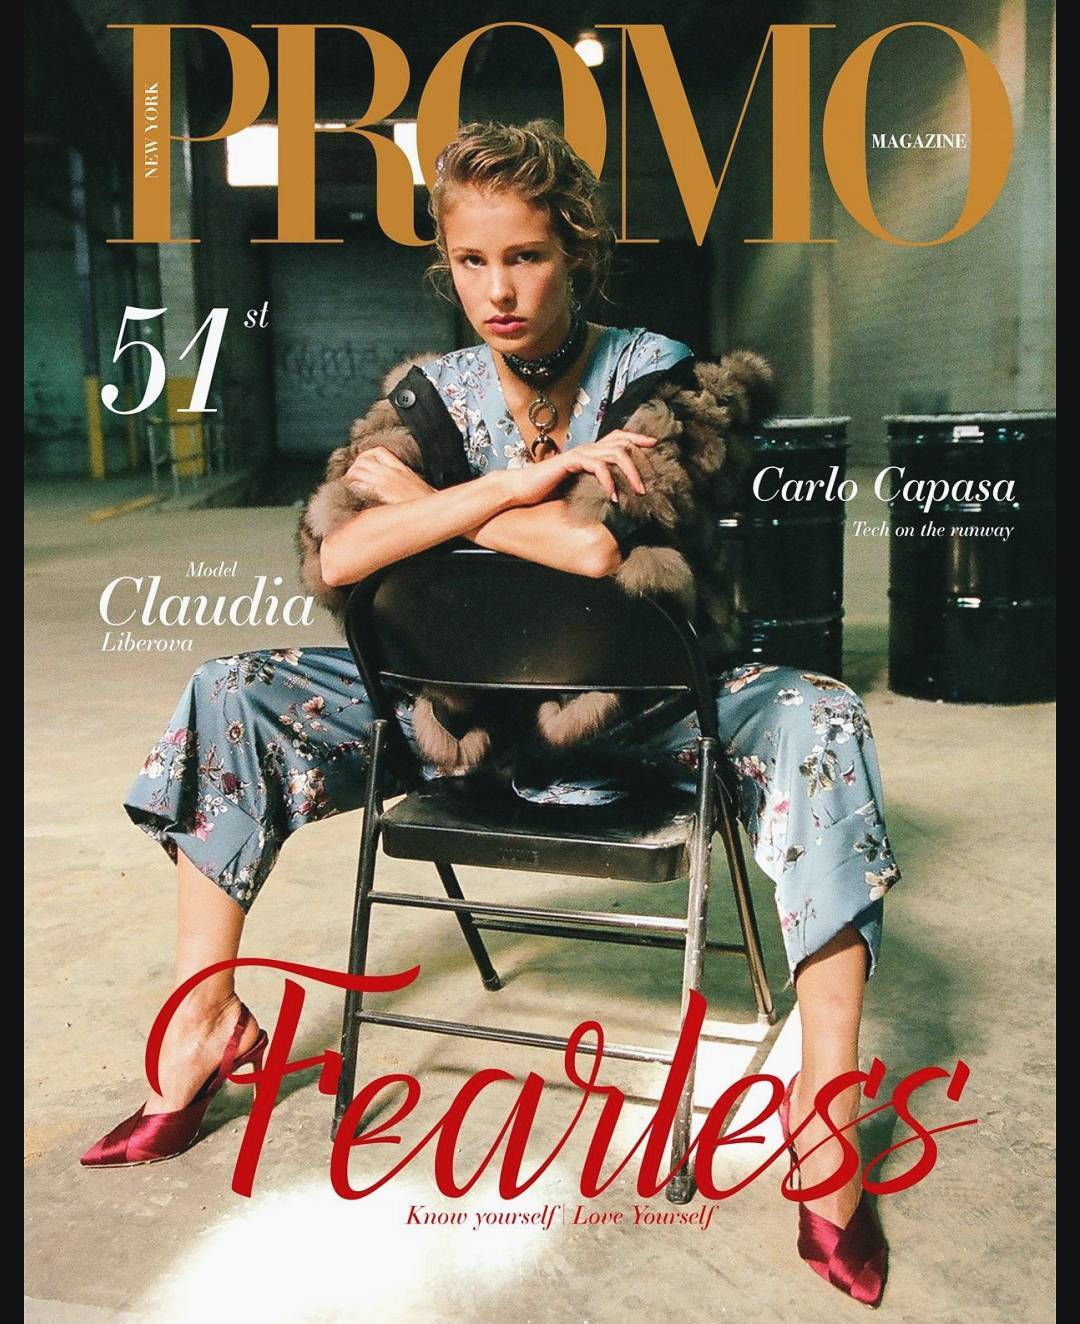 Claudia Liberova sits on a chair which has been turned around, on the cover of Fearless magazine